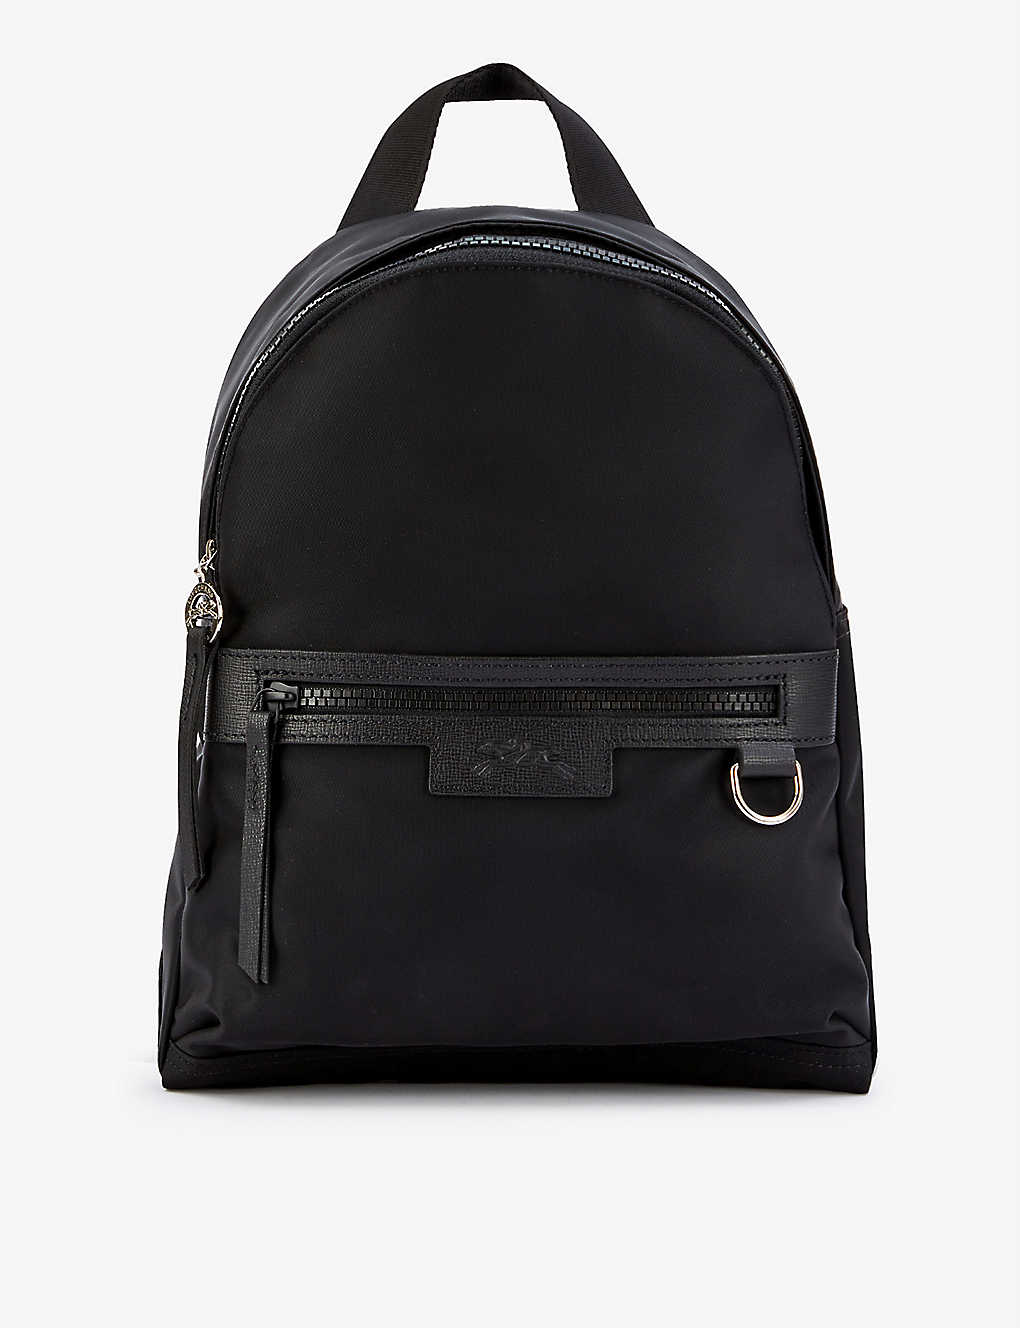 11d8a8906ff LONGCHAMP - Le Pliage Neo backpack | Selfridges.com